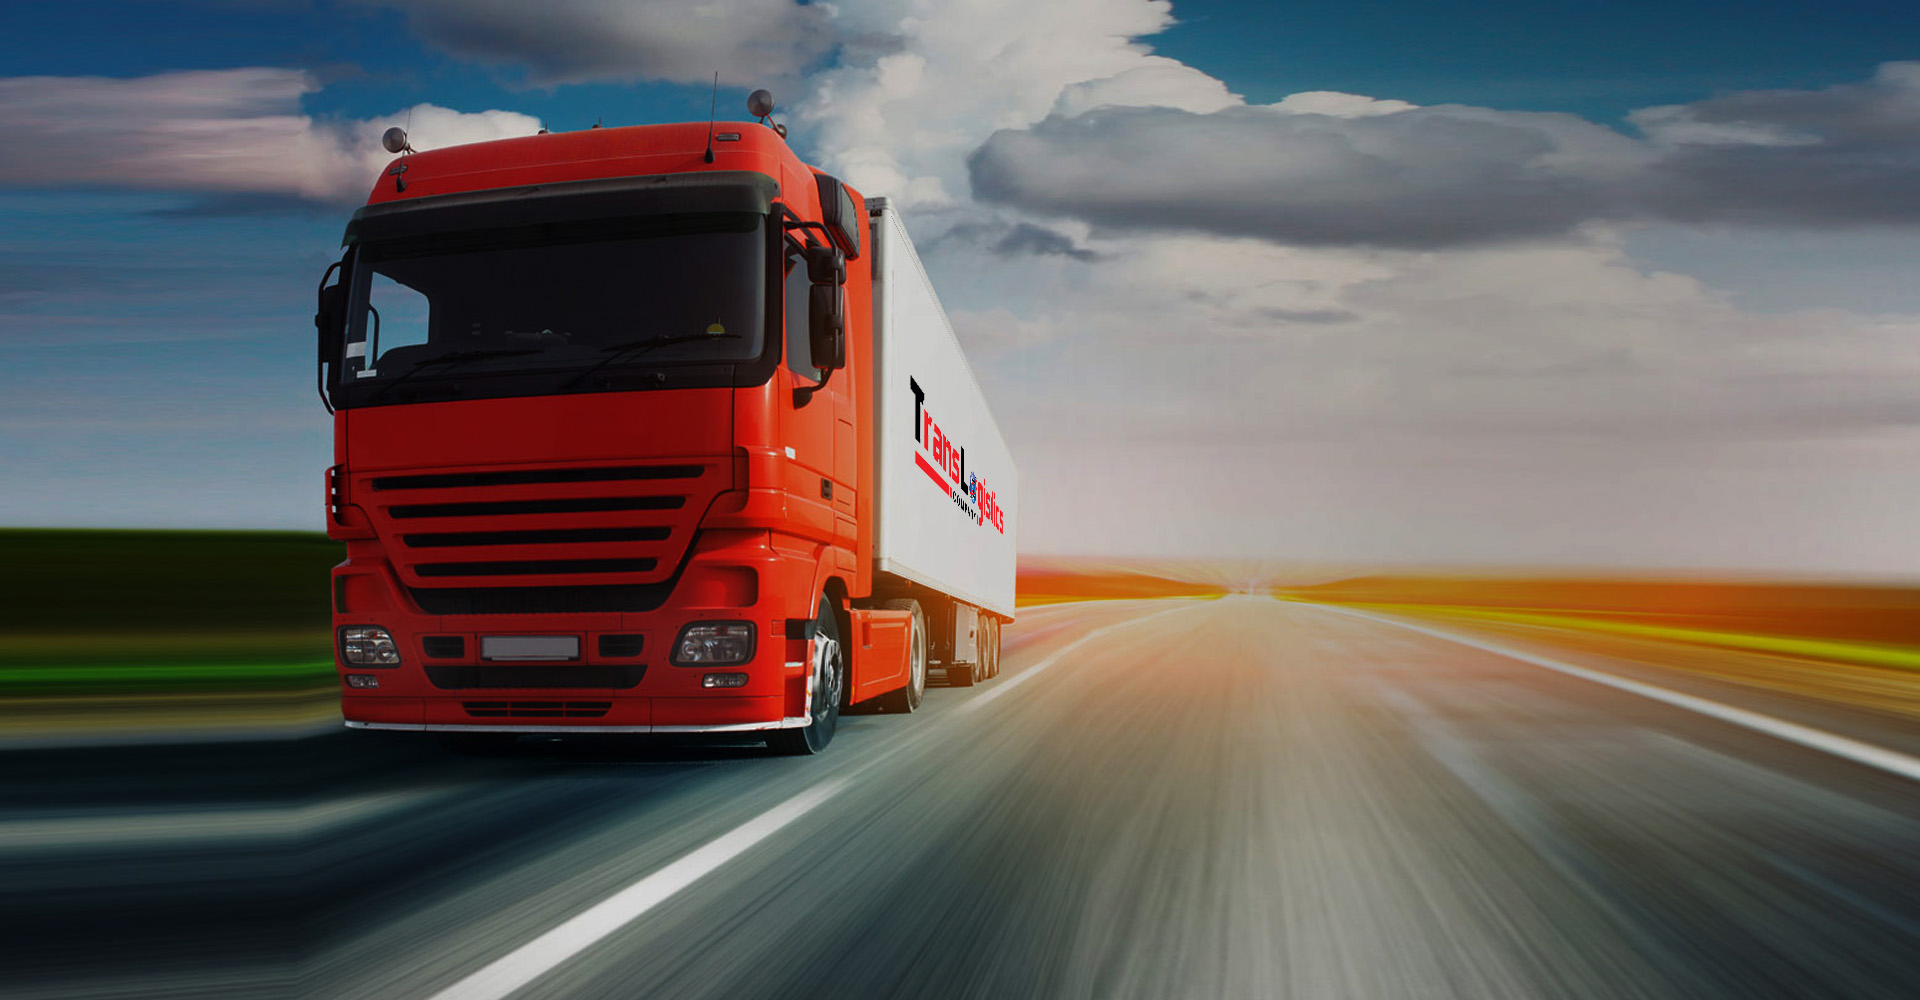 Transport Company Wallpapers High Quality | Download Free